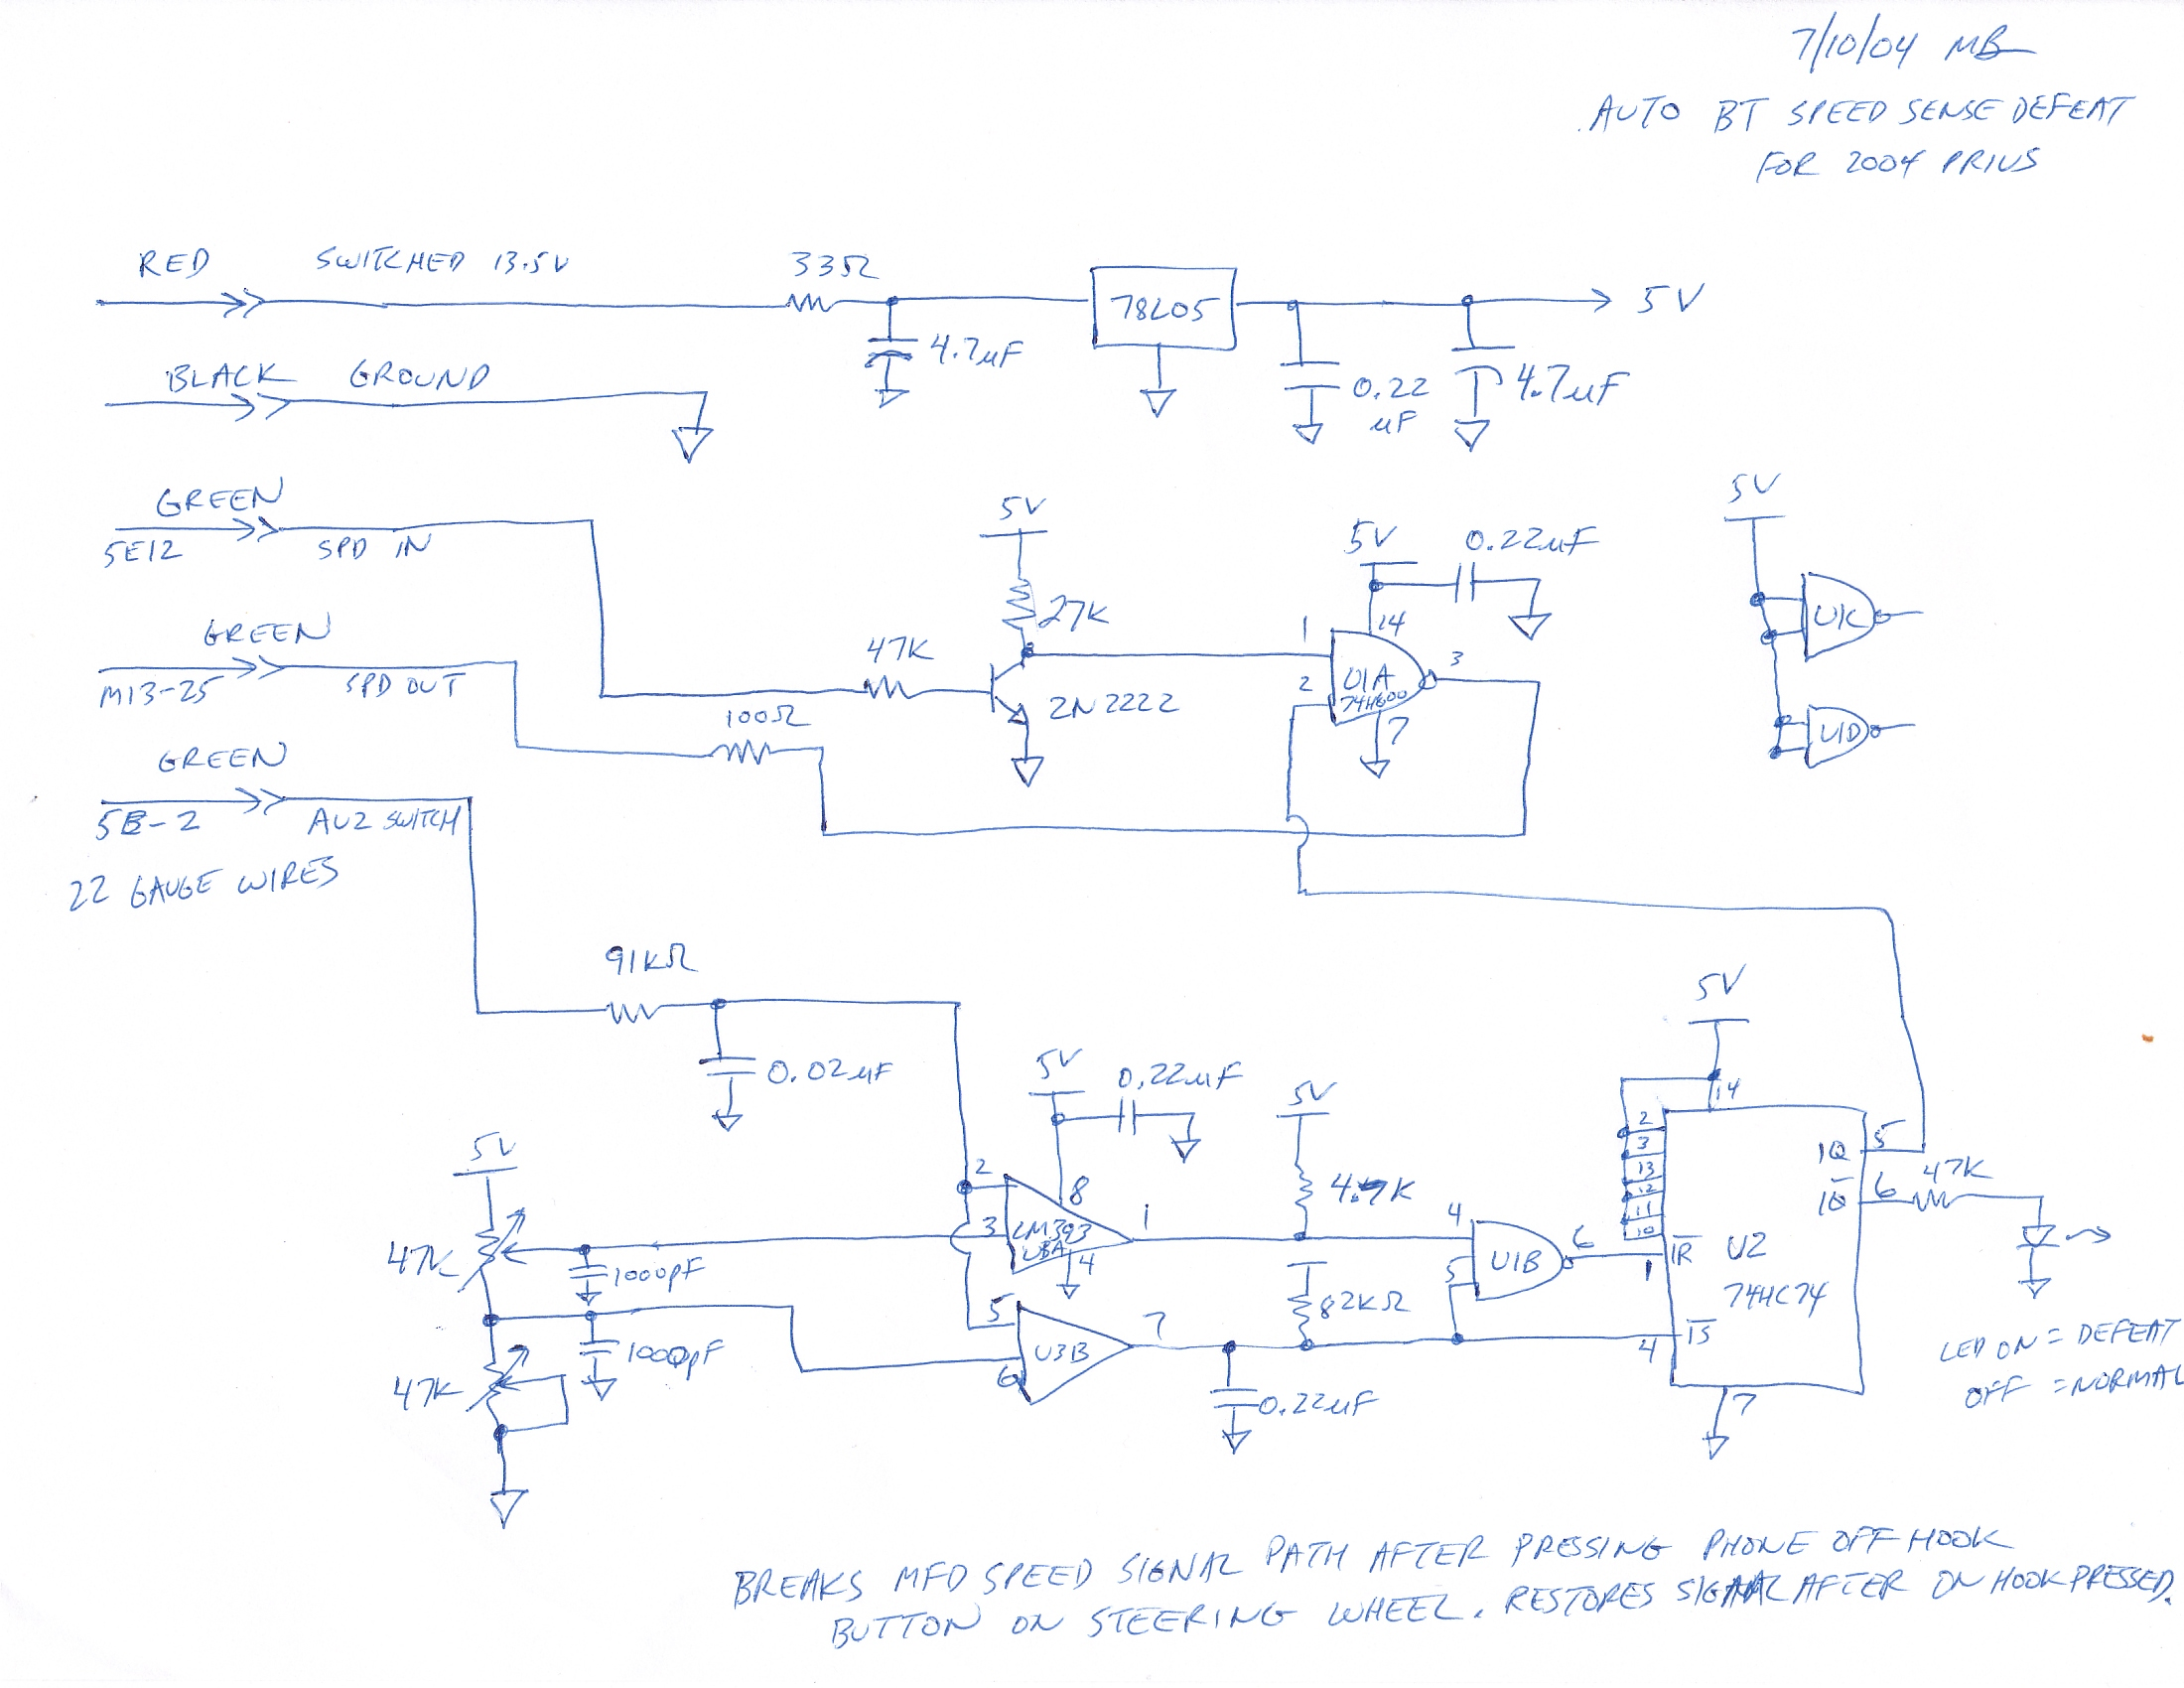 bt_only_schematic index of prius bt versatility wiring diagram at bakdesigns.co